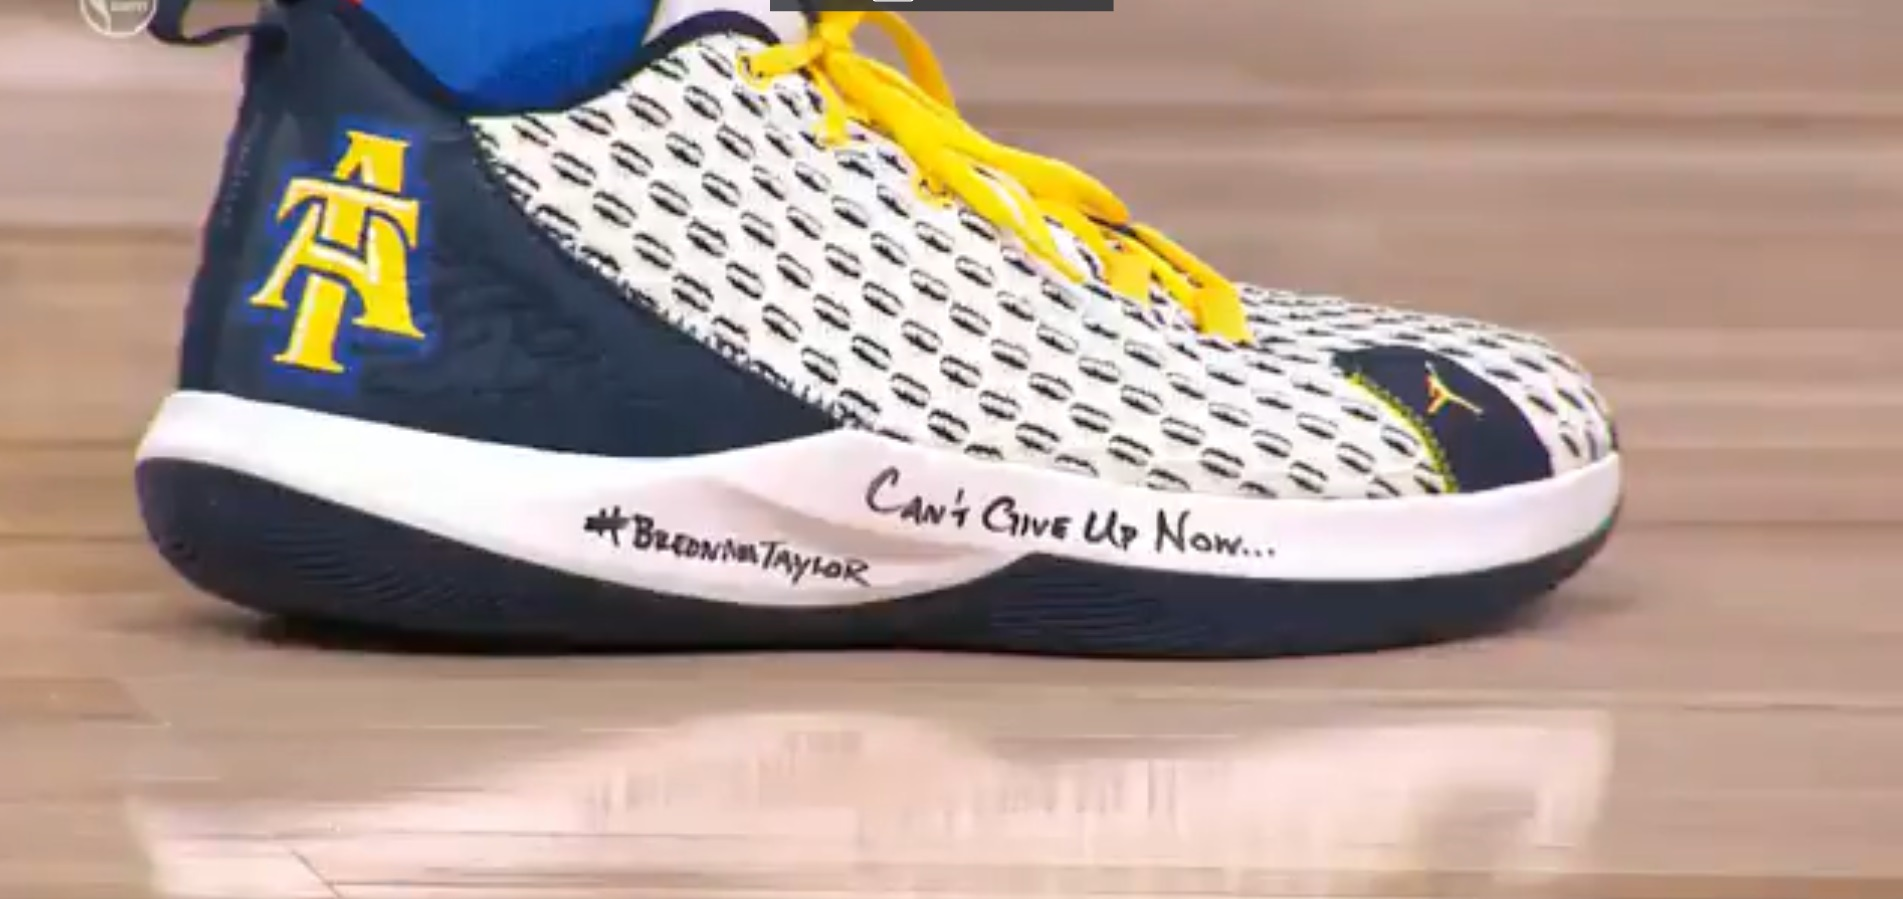 PHOTO Chris Paul Wearing Shoe That Says Can't Give Up Now Breonna Taylor